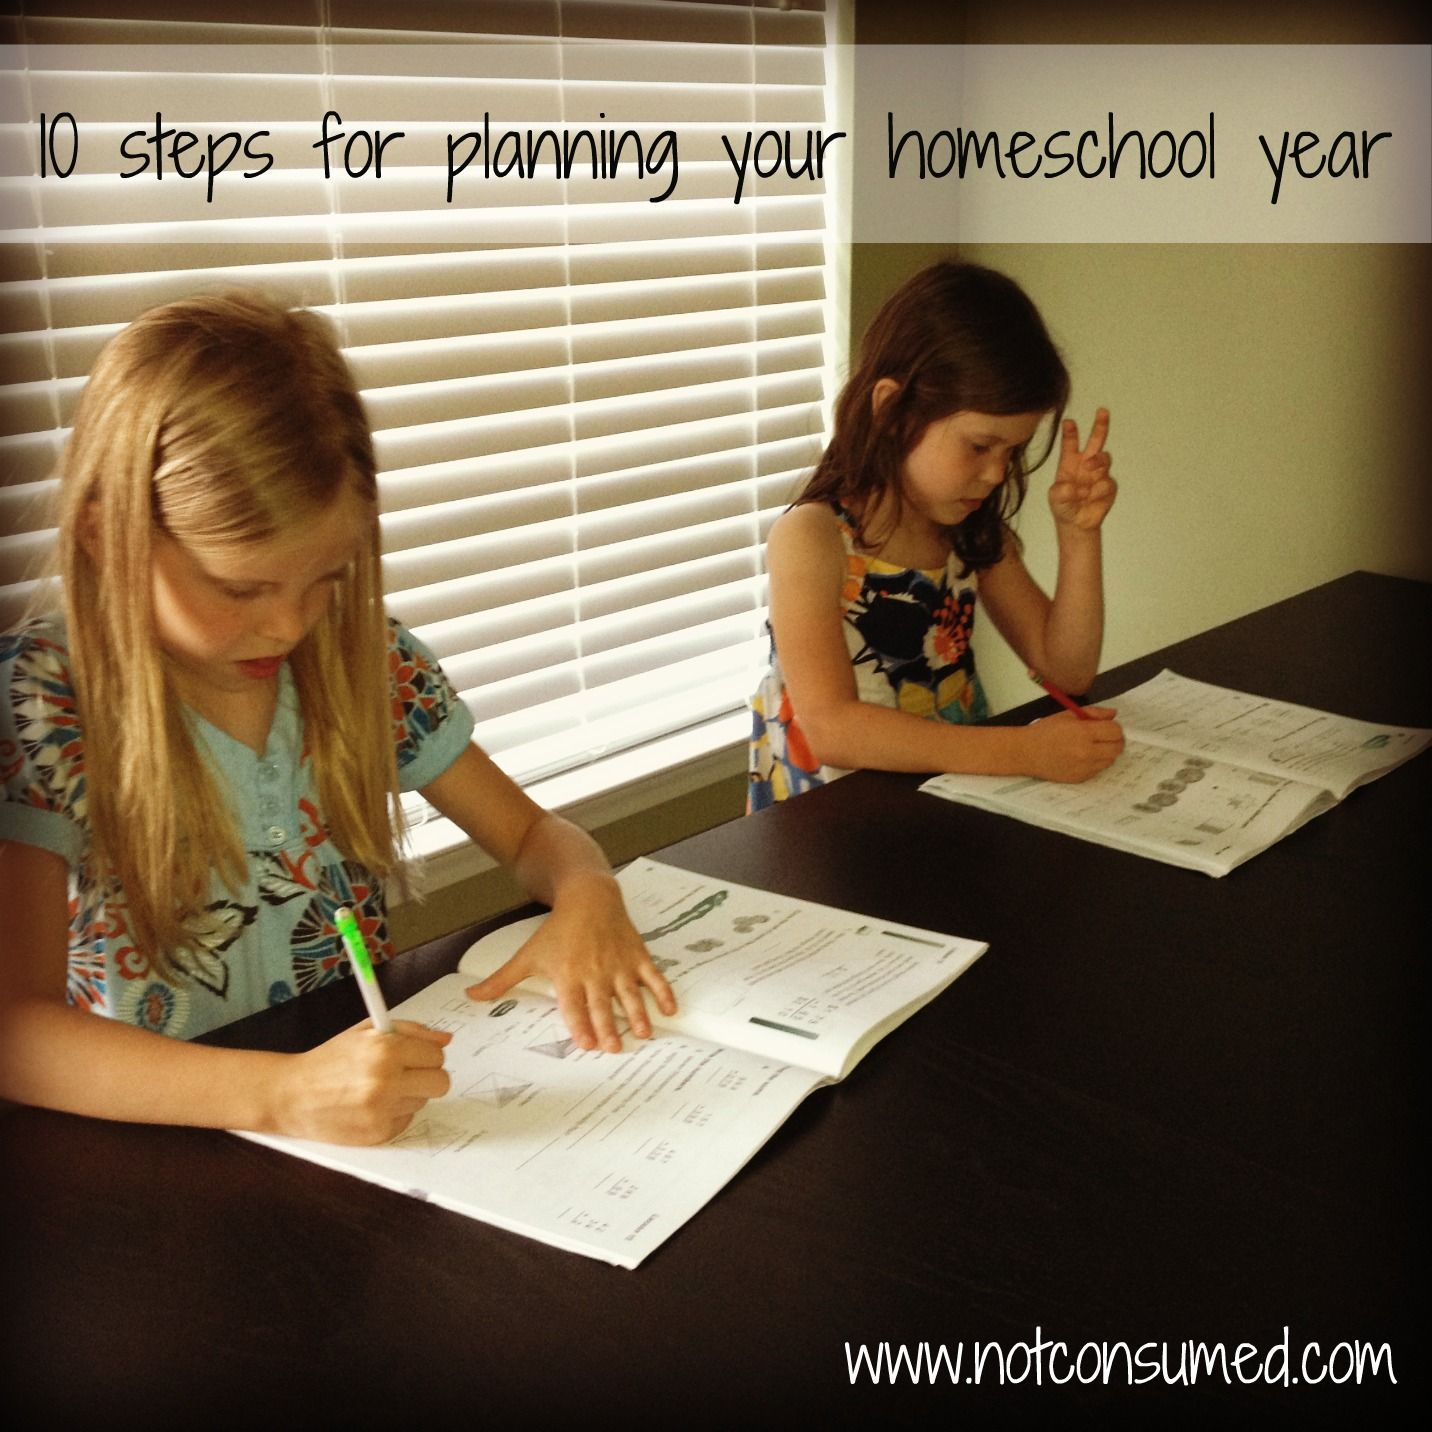 great homeschooling ideas, and blogs! i needed this to help get organized with everything!!